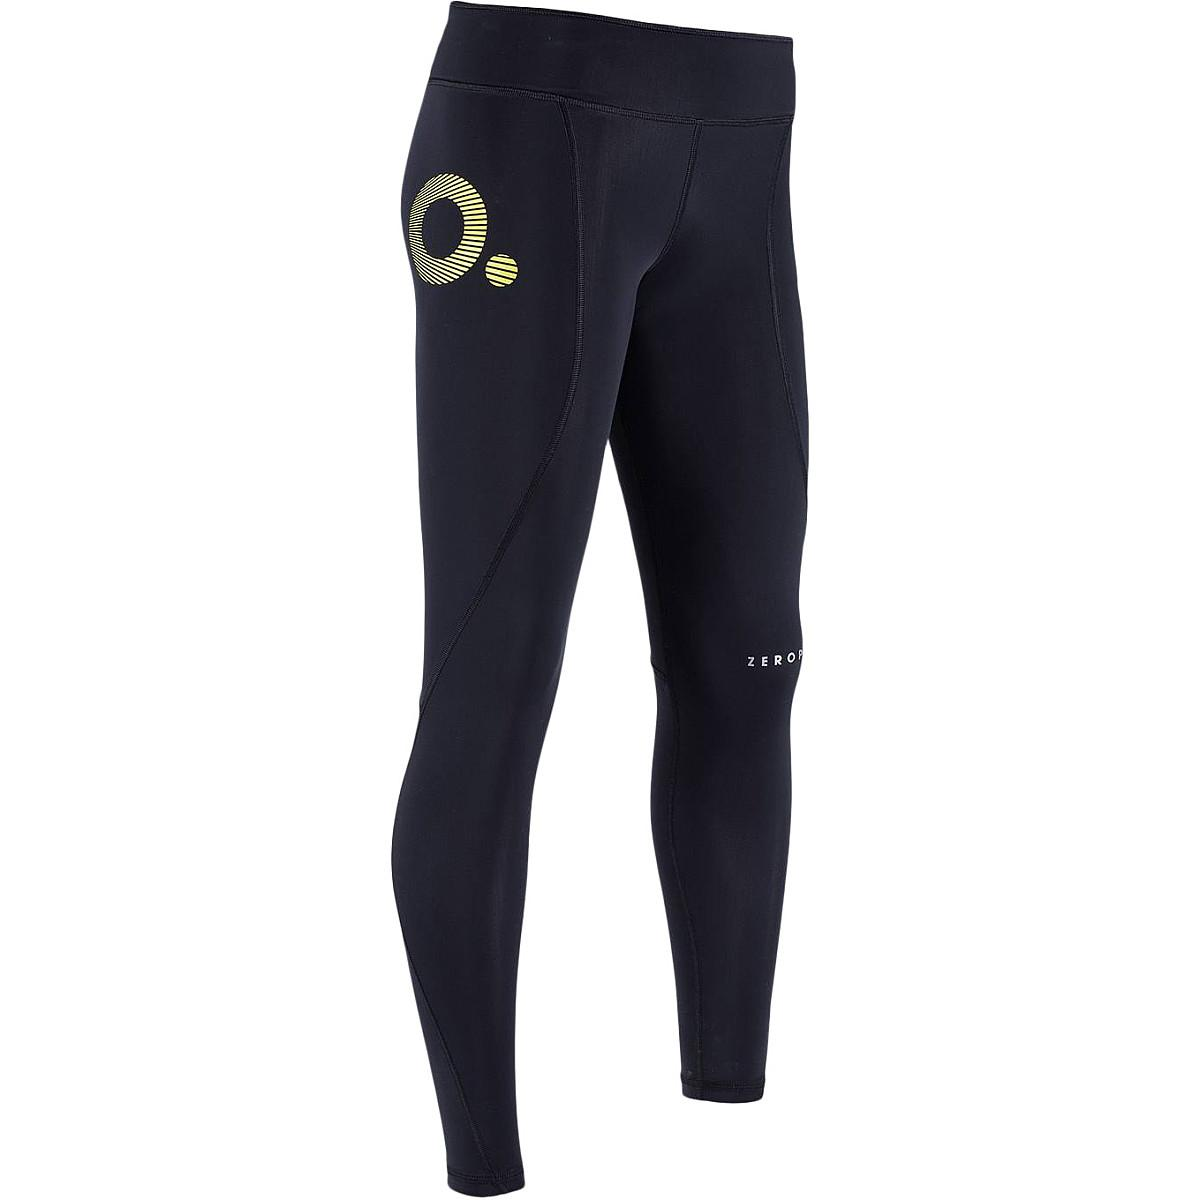 89bded6485 Details about ZEROPOINT WOMEN'S THERMAL COMPRESSION TIGHTS 2.0